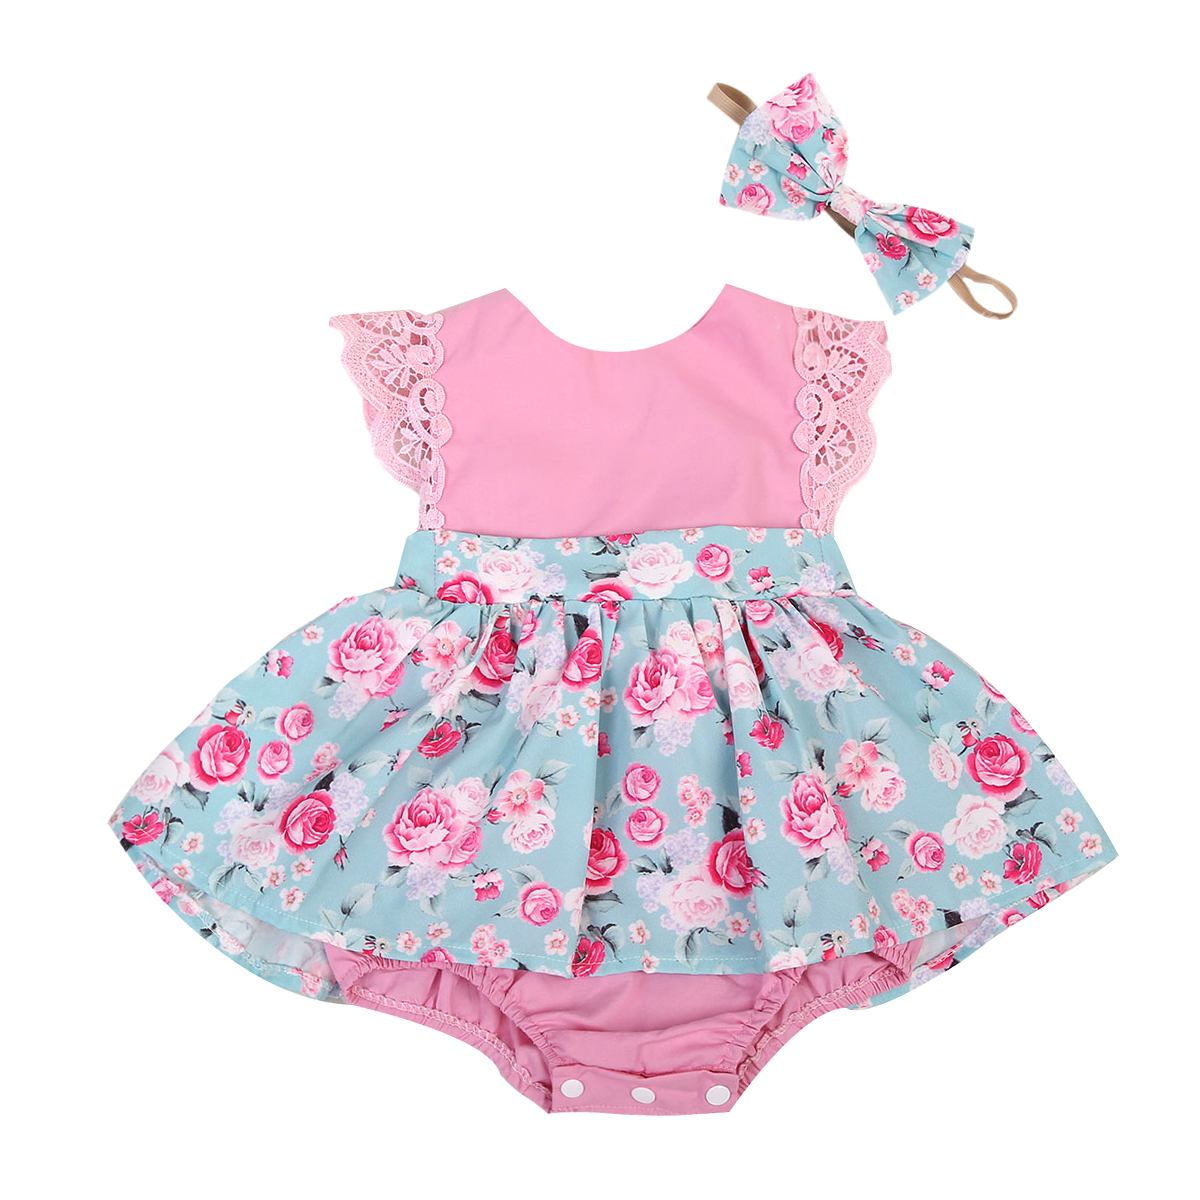 Baby Girl Clothes Lace Floral Bodysuit Sunsuit Outfits Lovely White ...